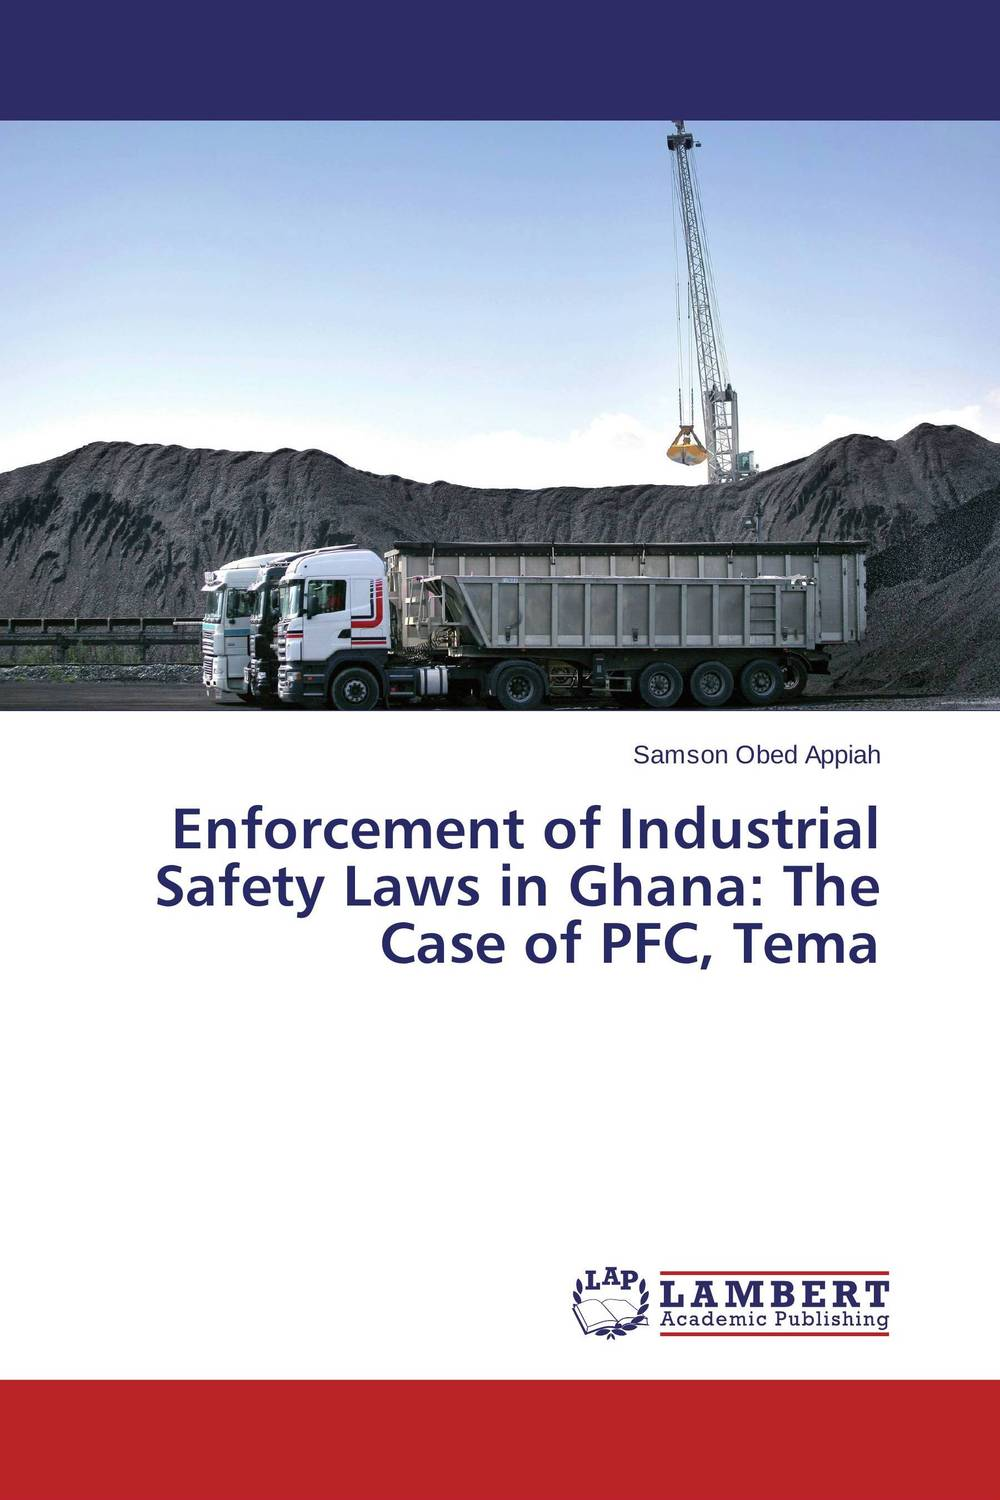 Enforcement of Industrial Safety Laws in Ghana: The Case of PFC, Tema management of special schools in ghana